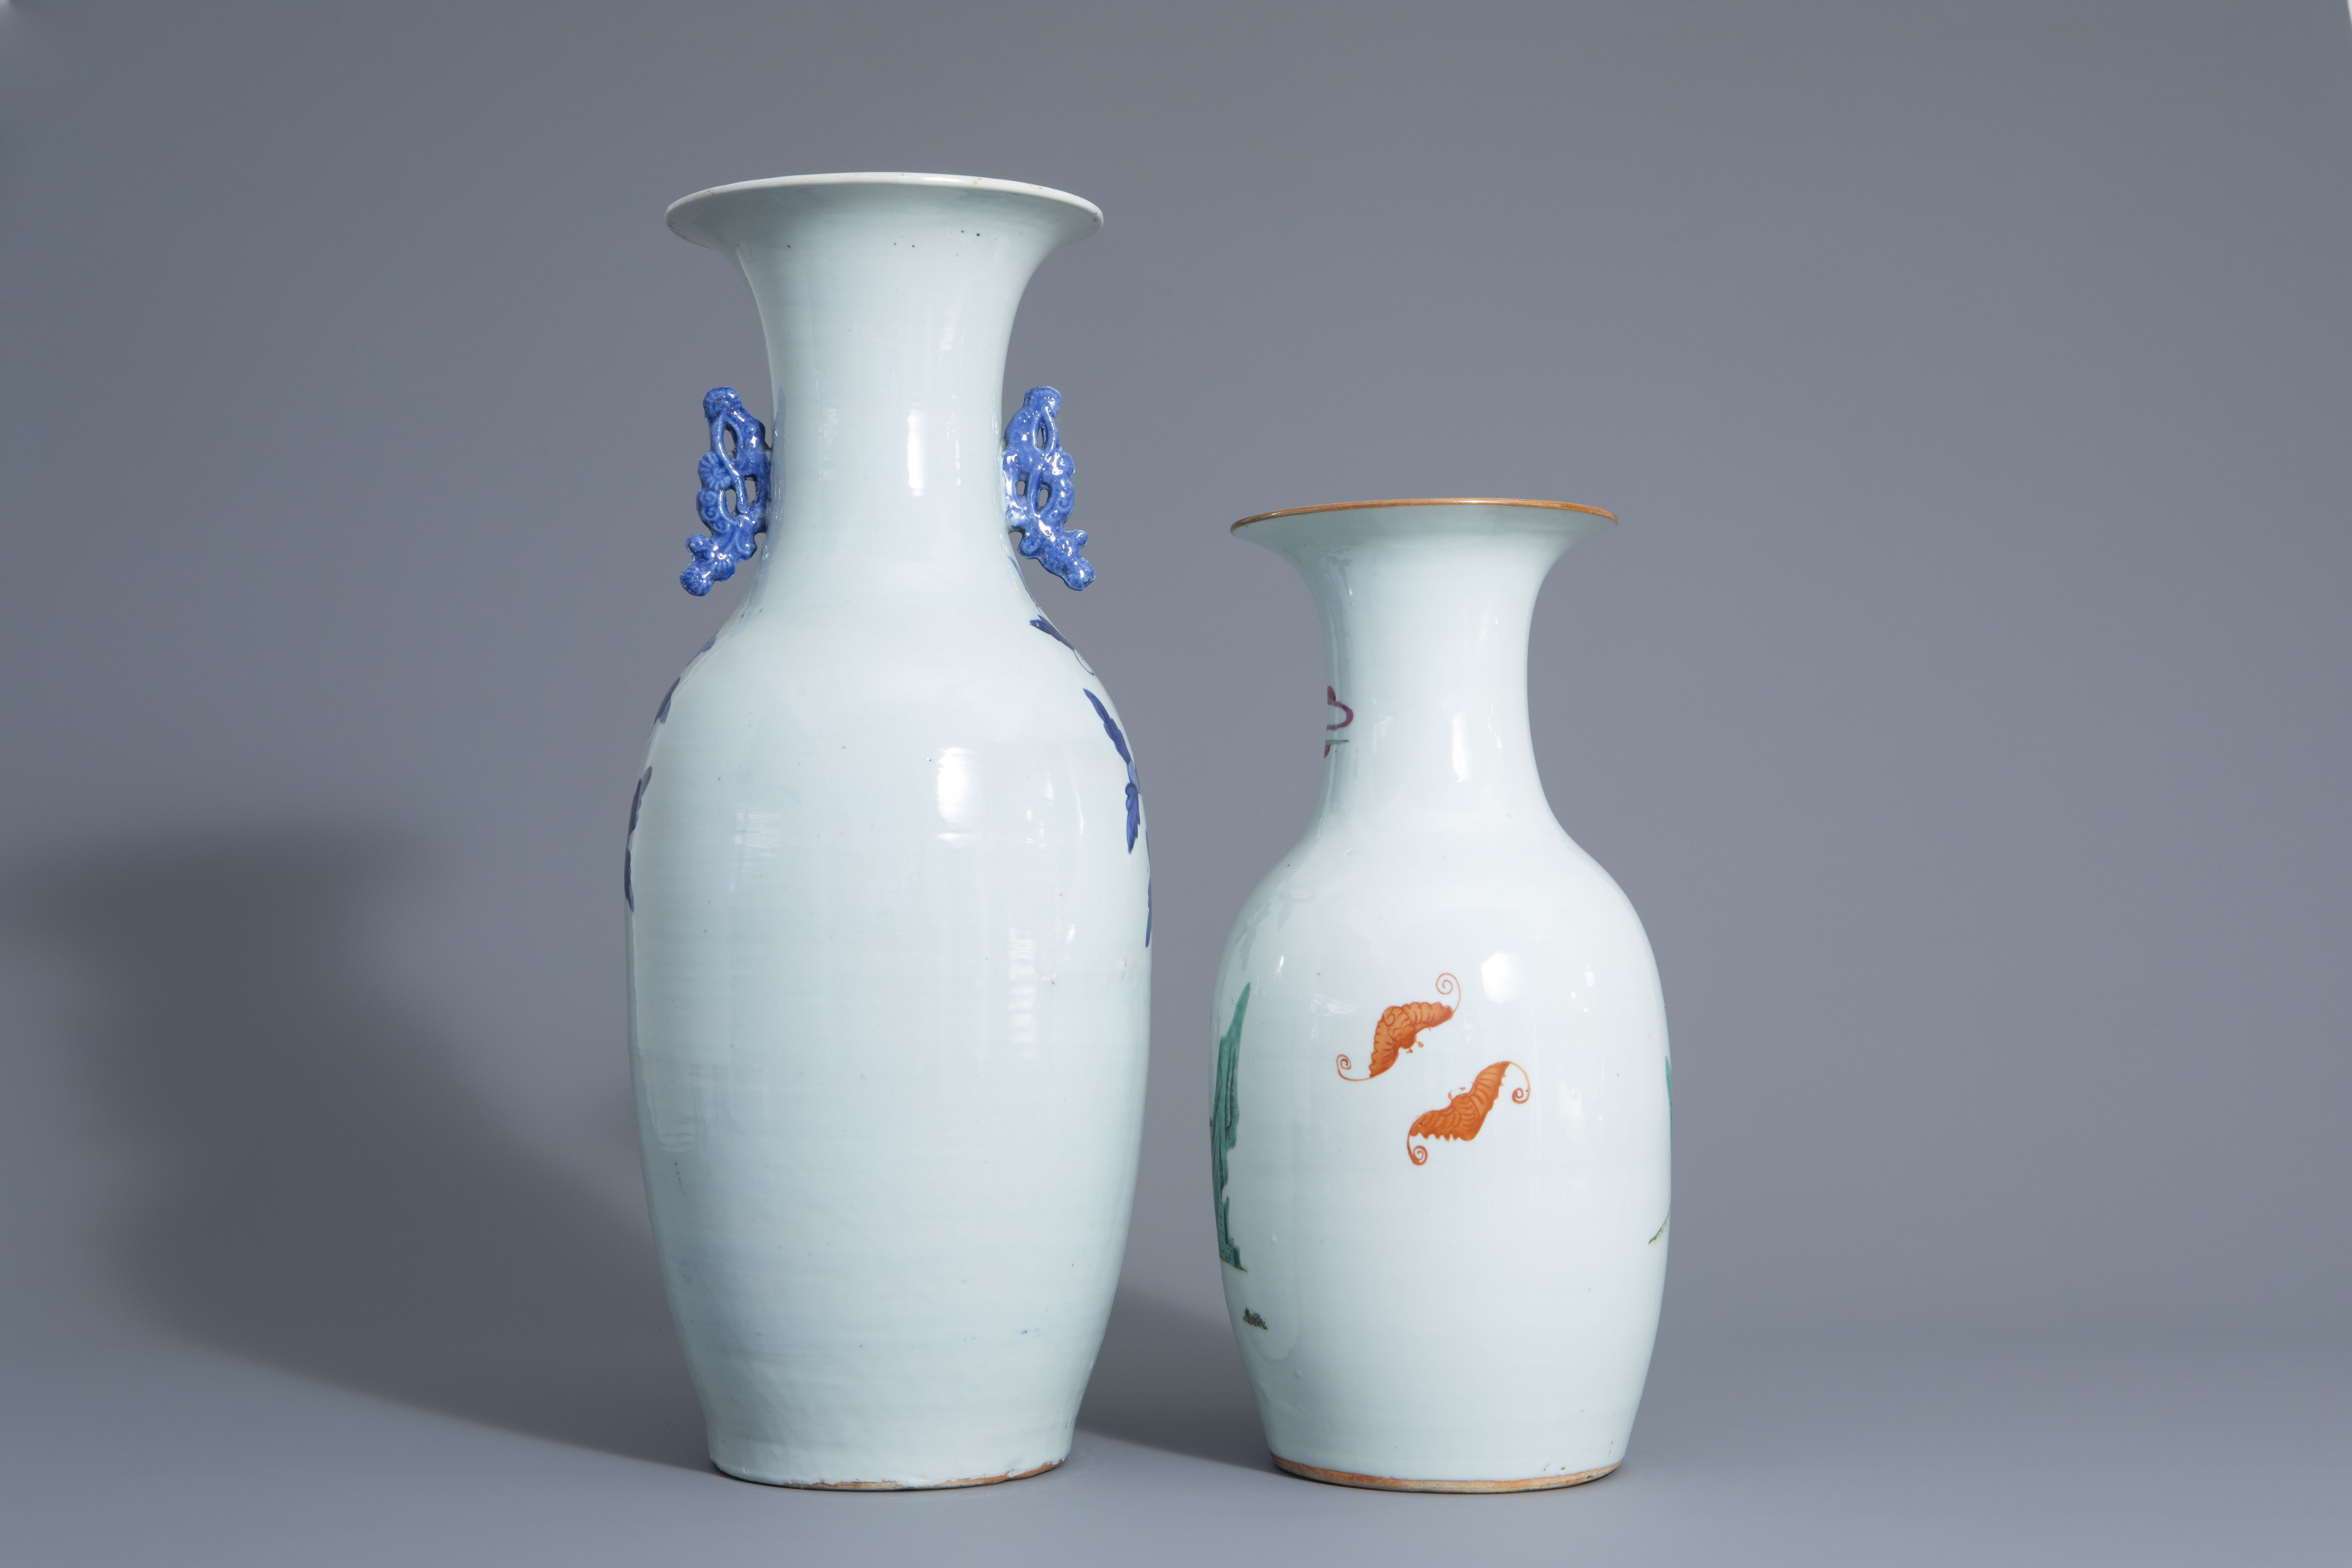 Two Chinese famille rose and blue and white vases with different designs, 19th/20th C. - Image 3 of 6